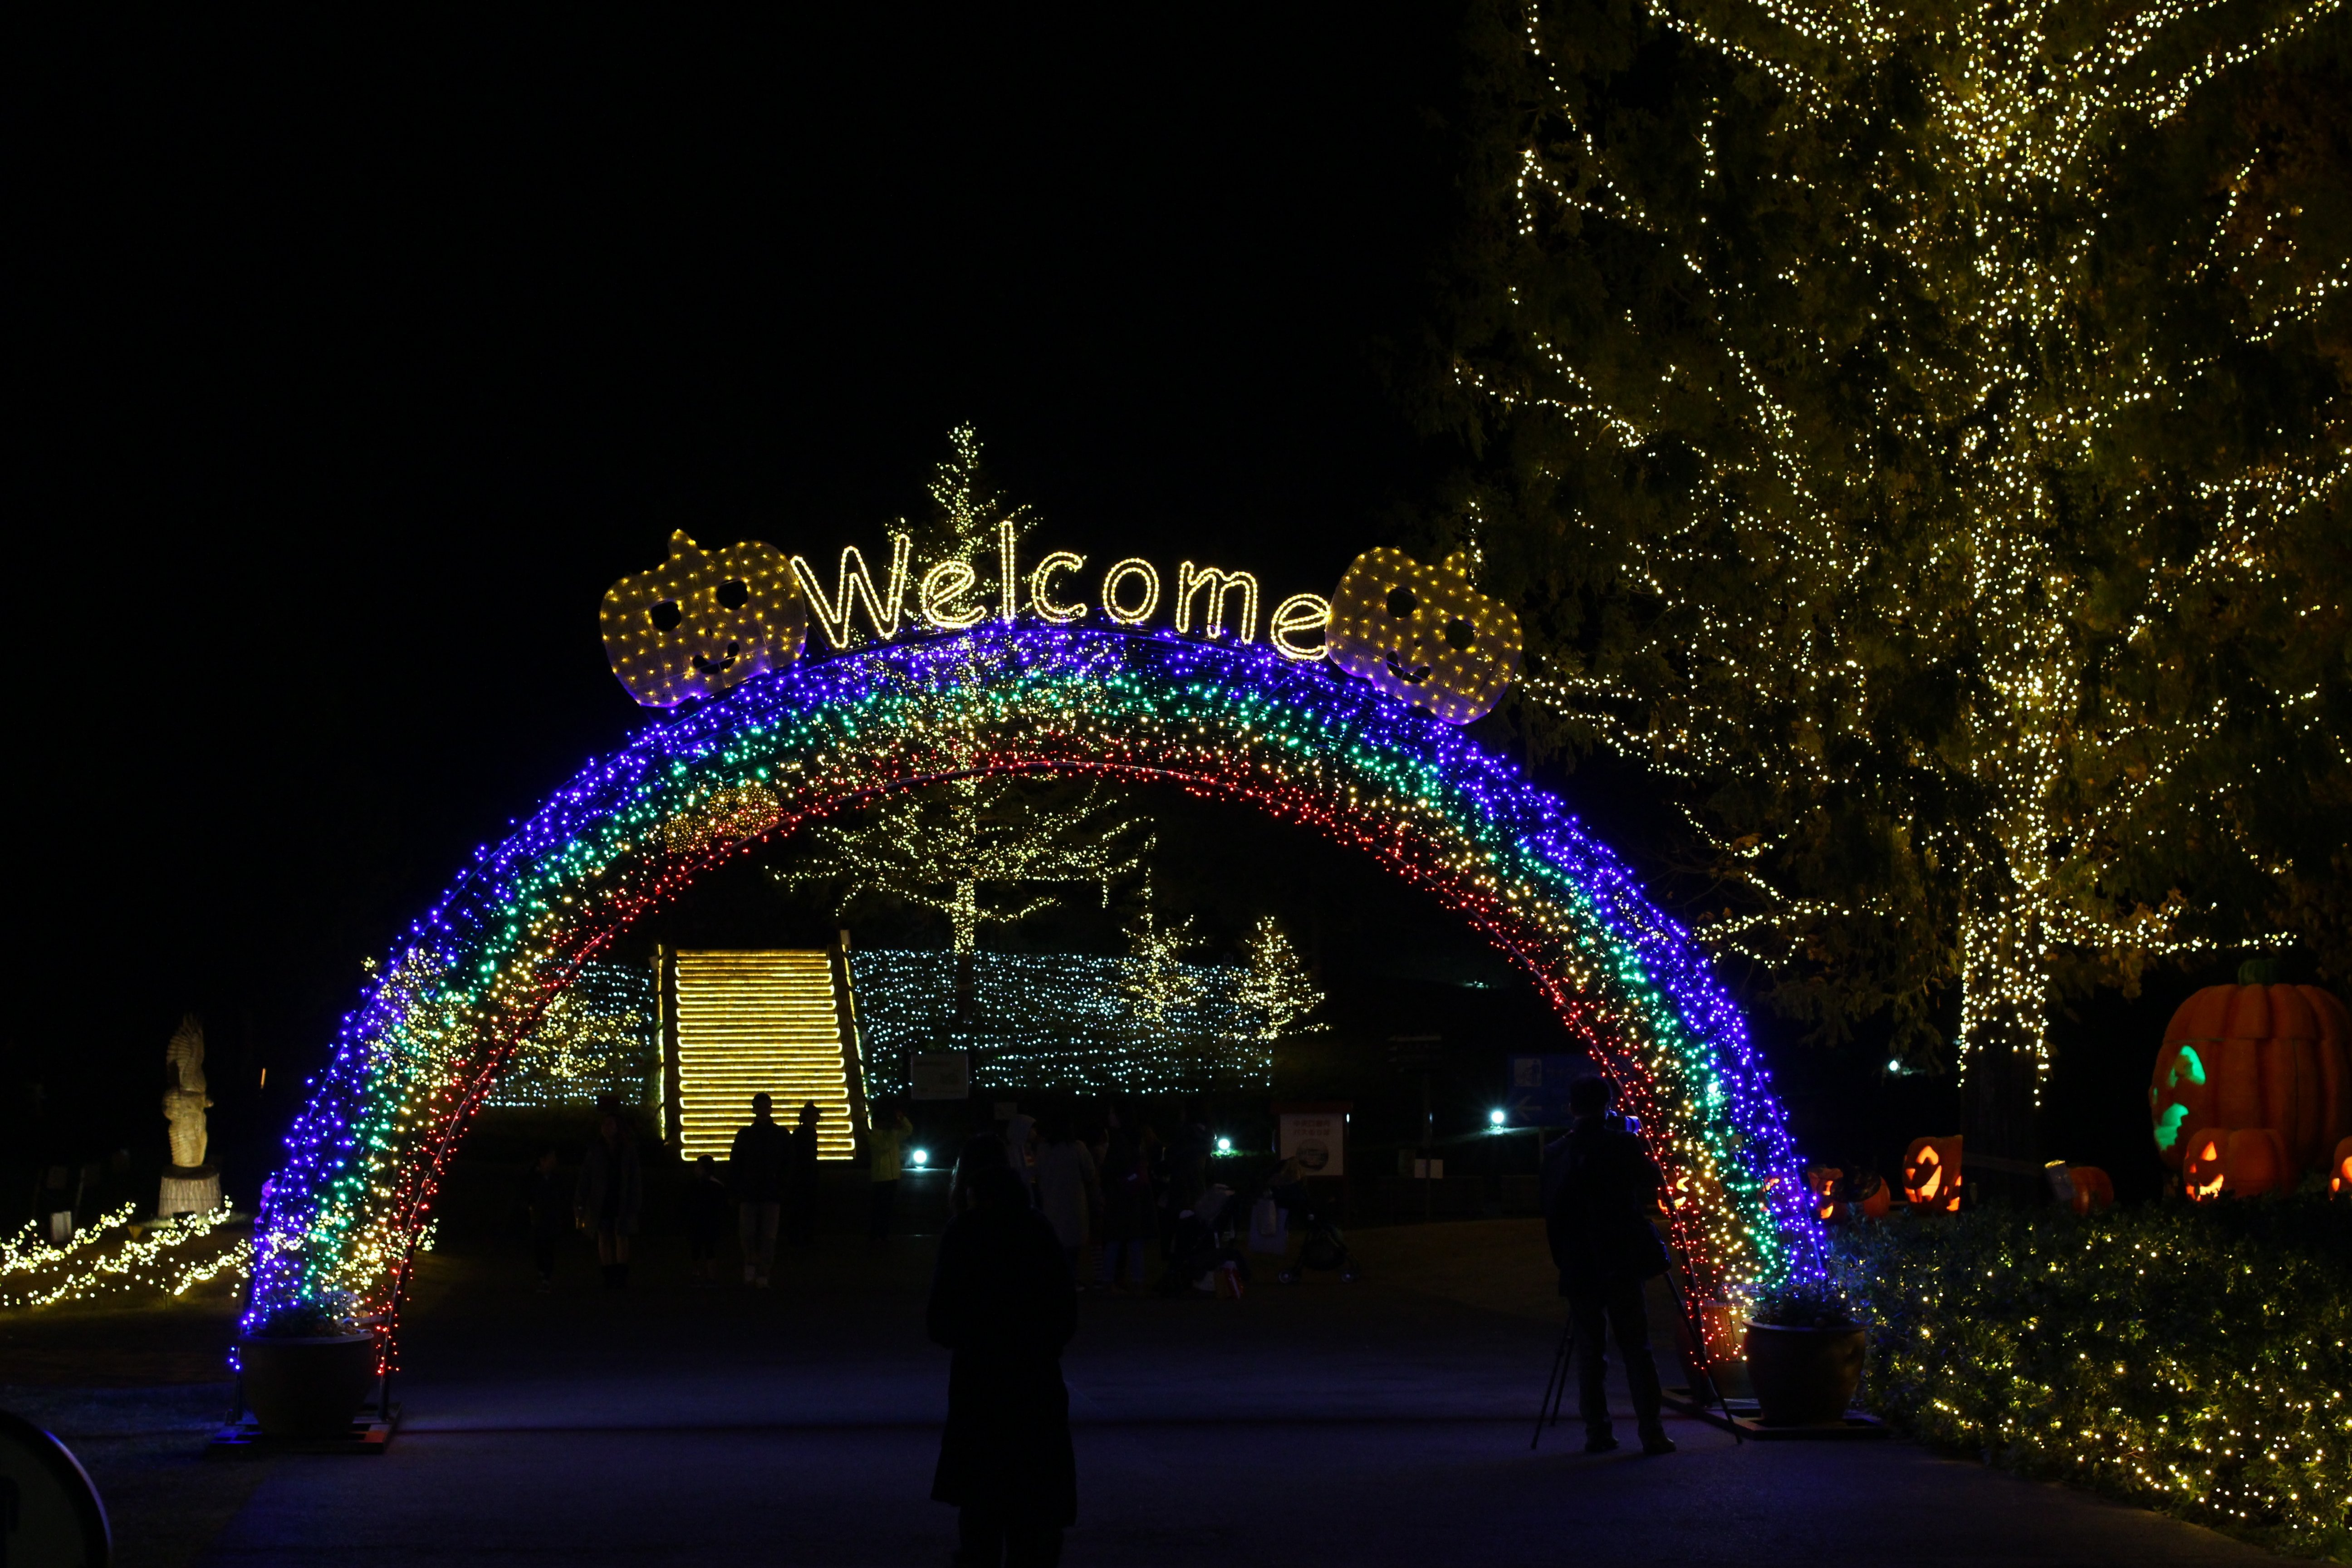 Shinrin Park Halloween and Winter Illumination Welcome sign inside the central gate